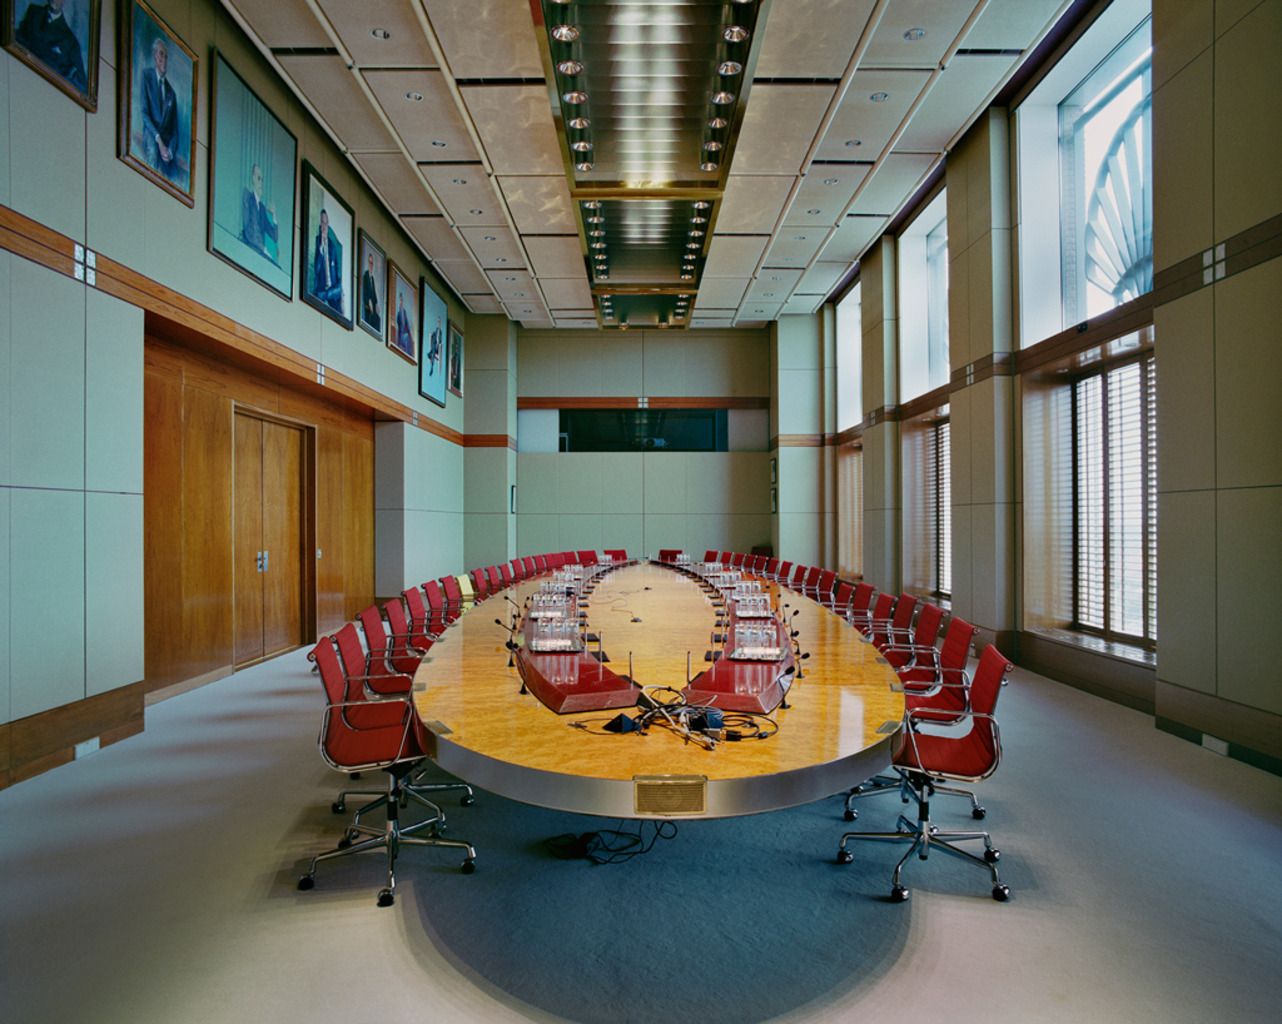 The meeting table of the Board of Directors of Royal Dutch Shell The Table of Power 2 The Hague, Netherlands 7 June 2010